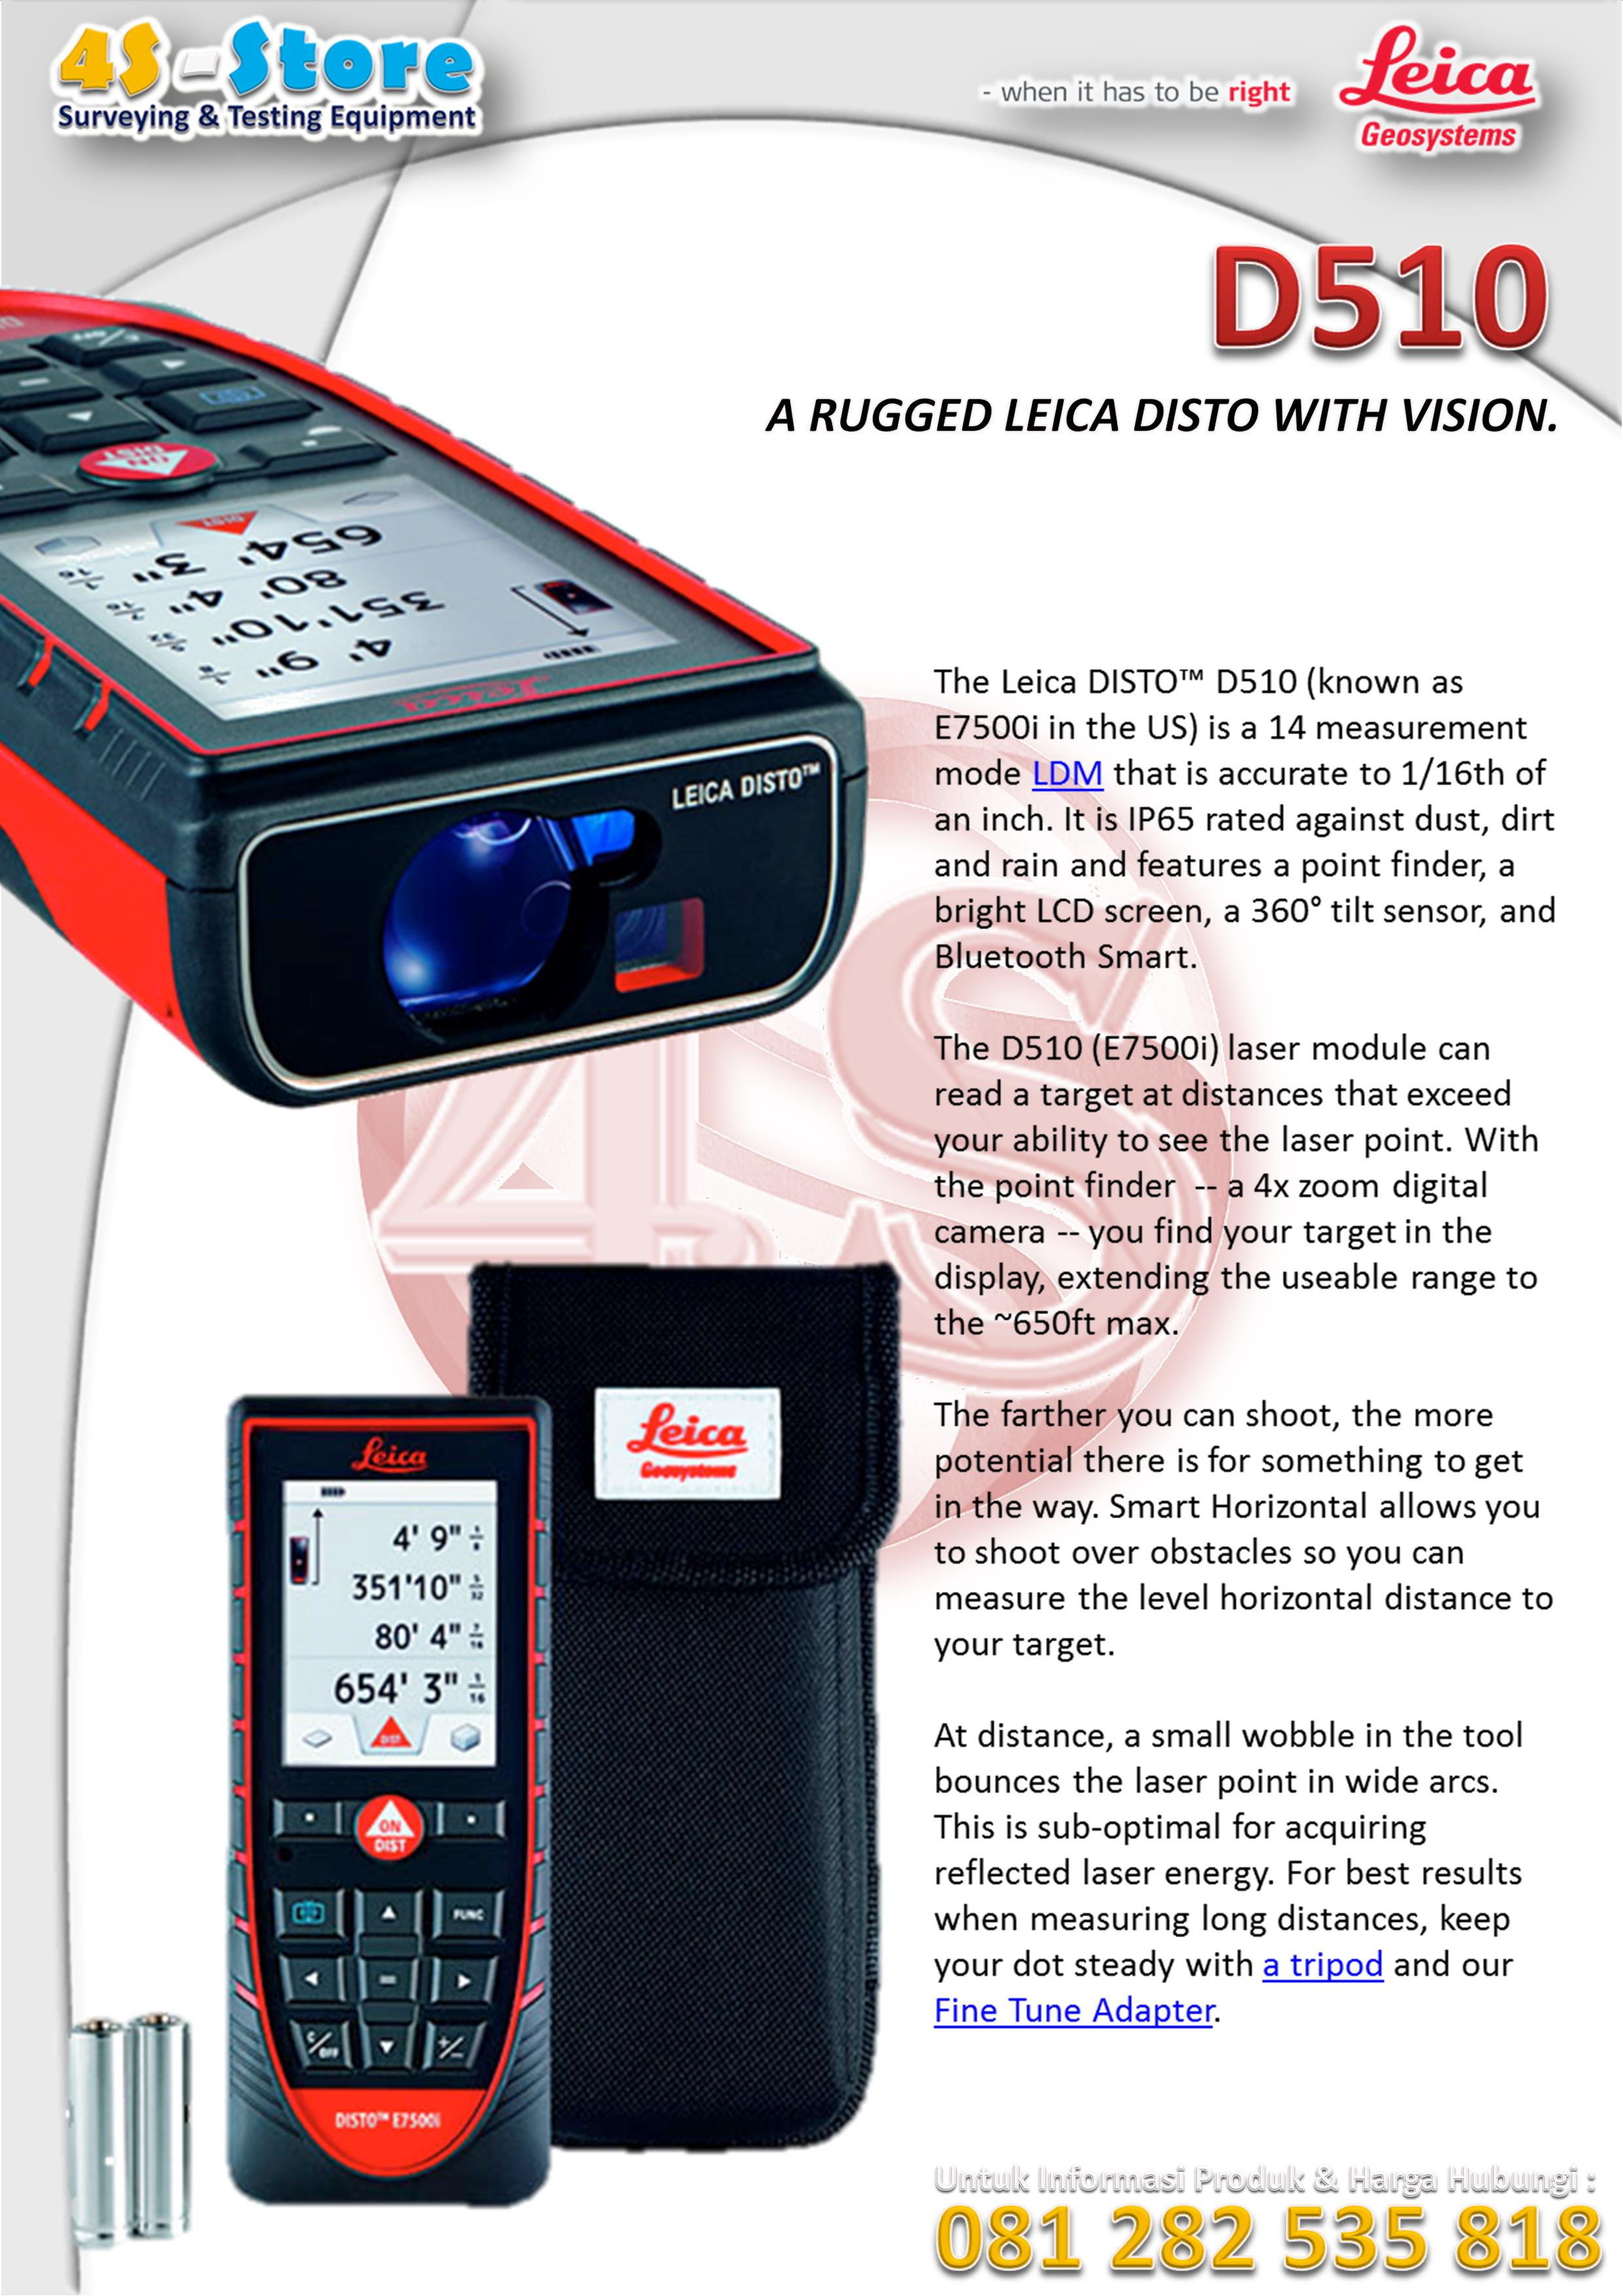 leica geosystem  u2013 all produk  u2013 4s store surveying